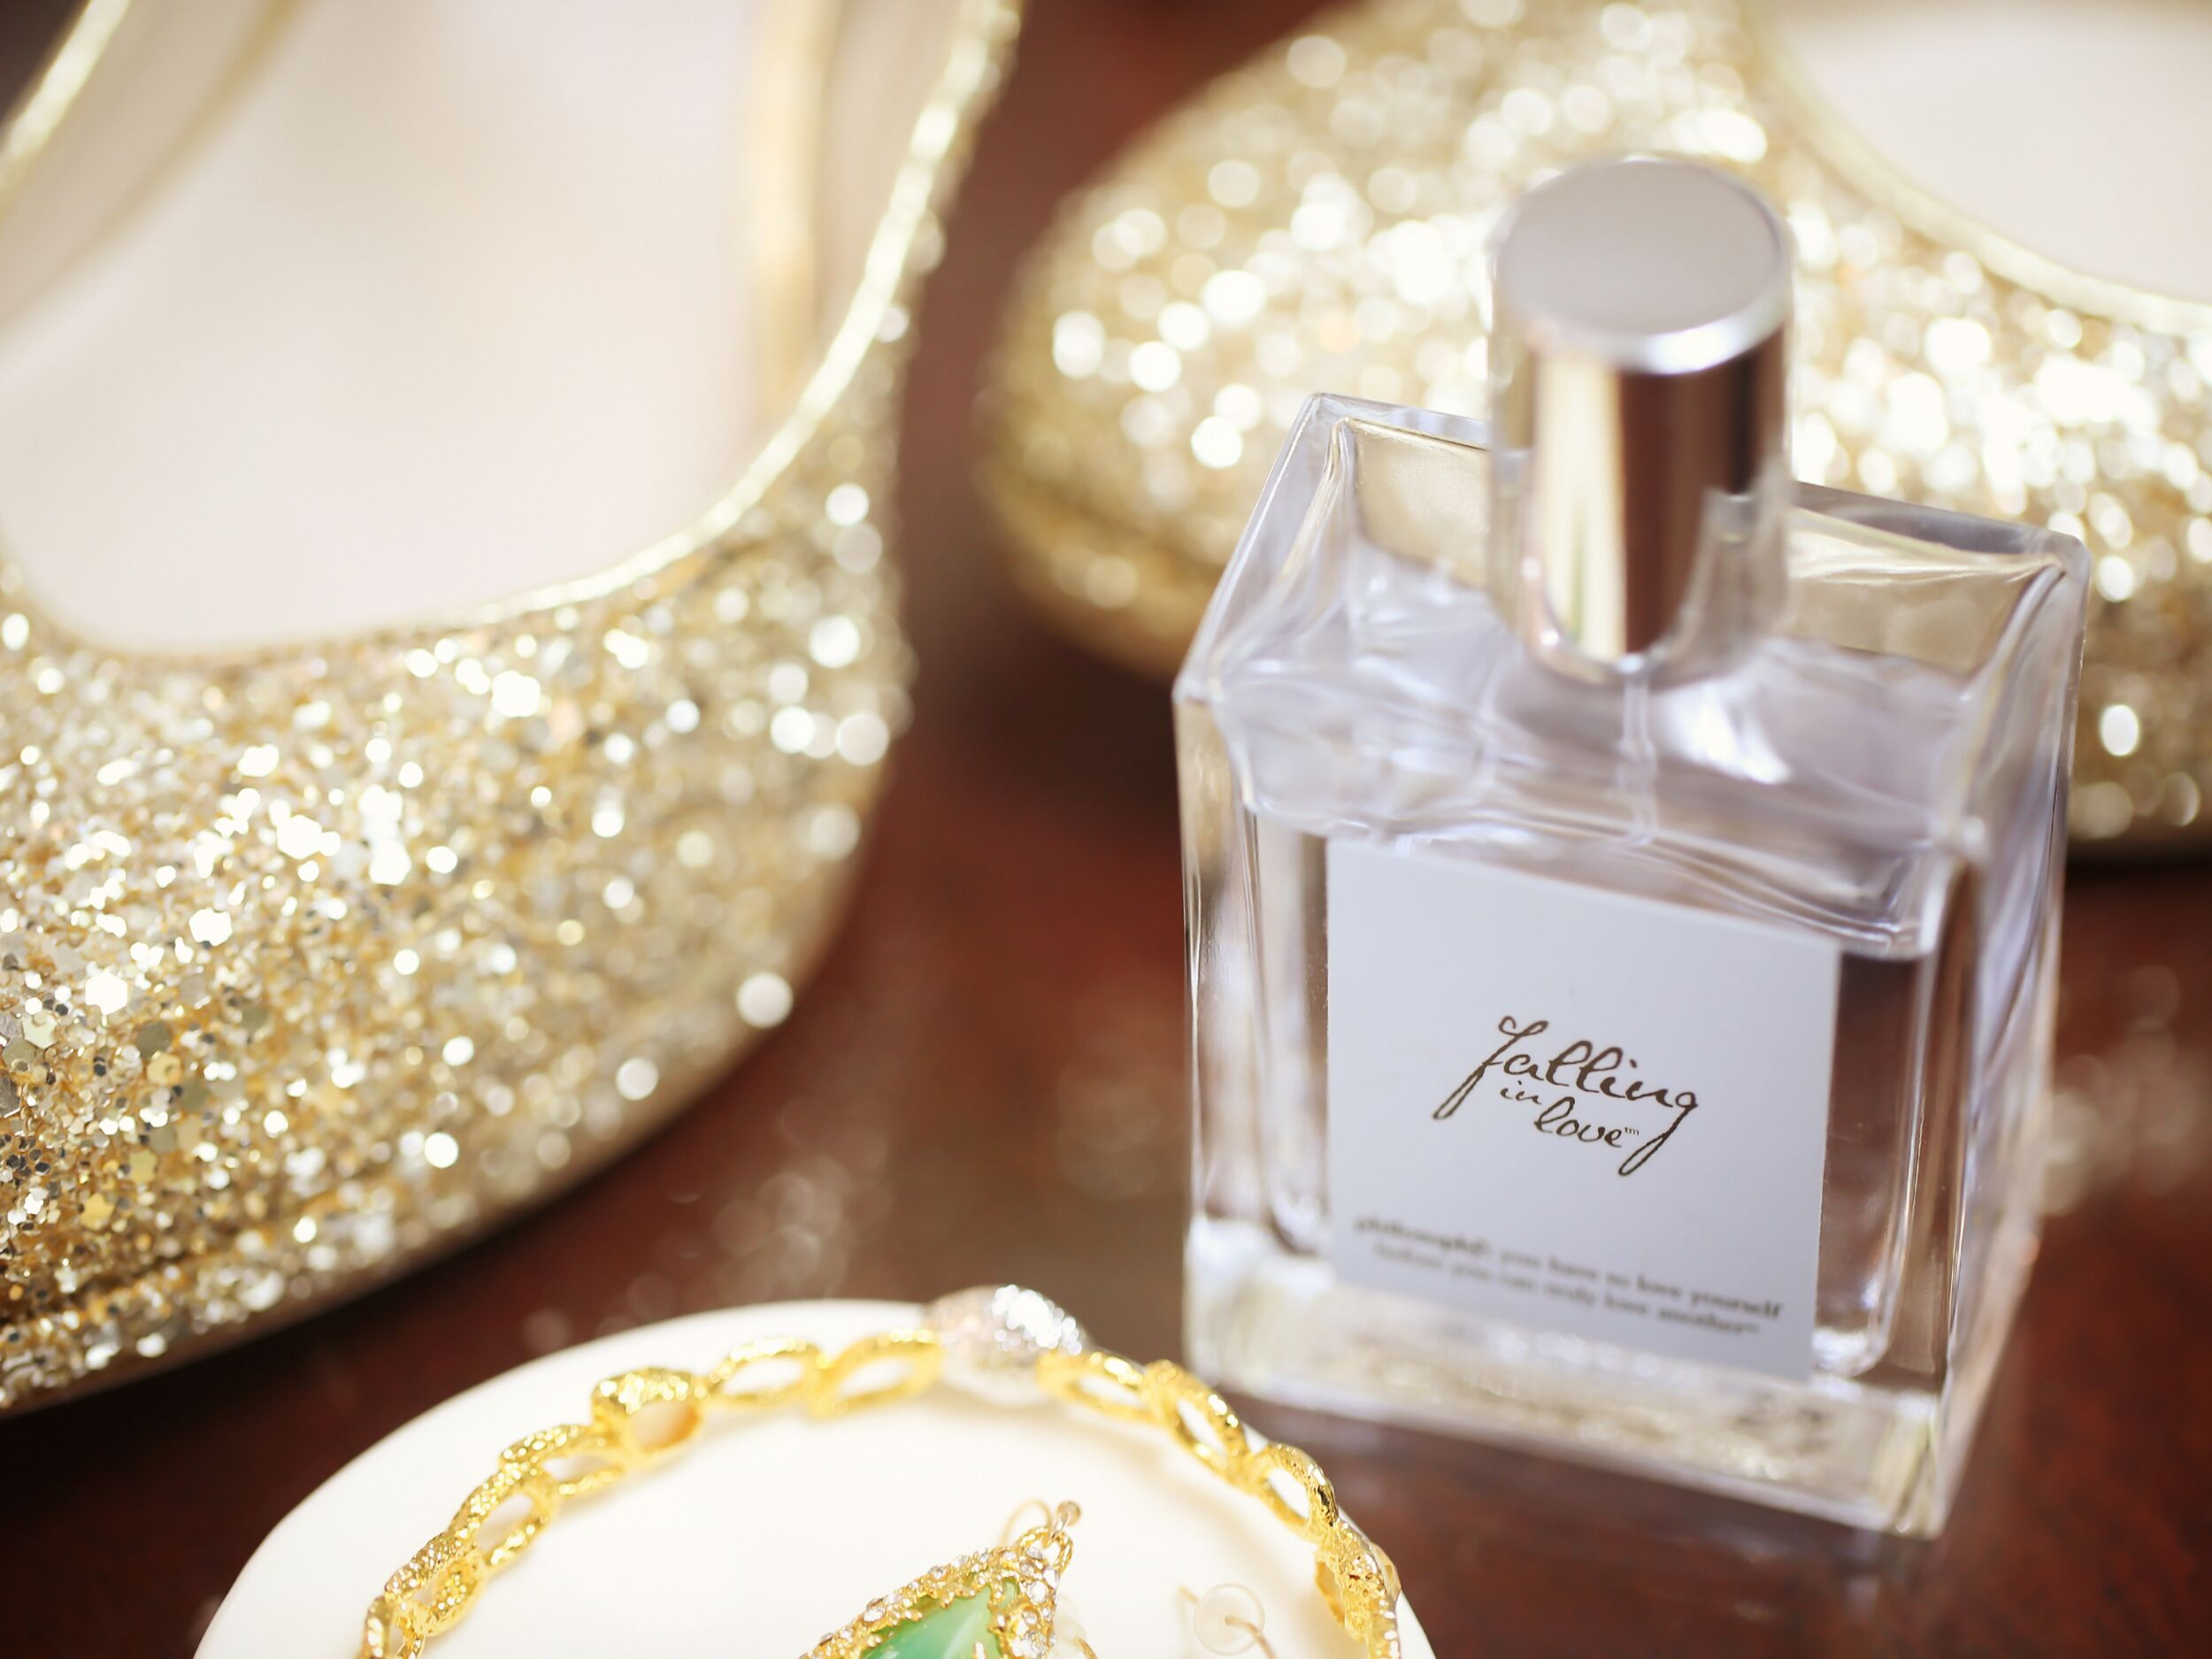 Perfume For Your Wedding Day